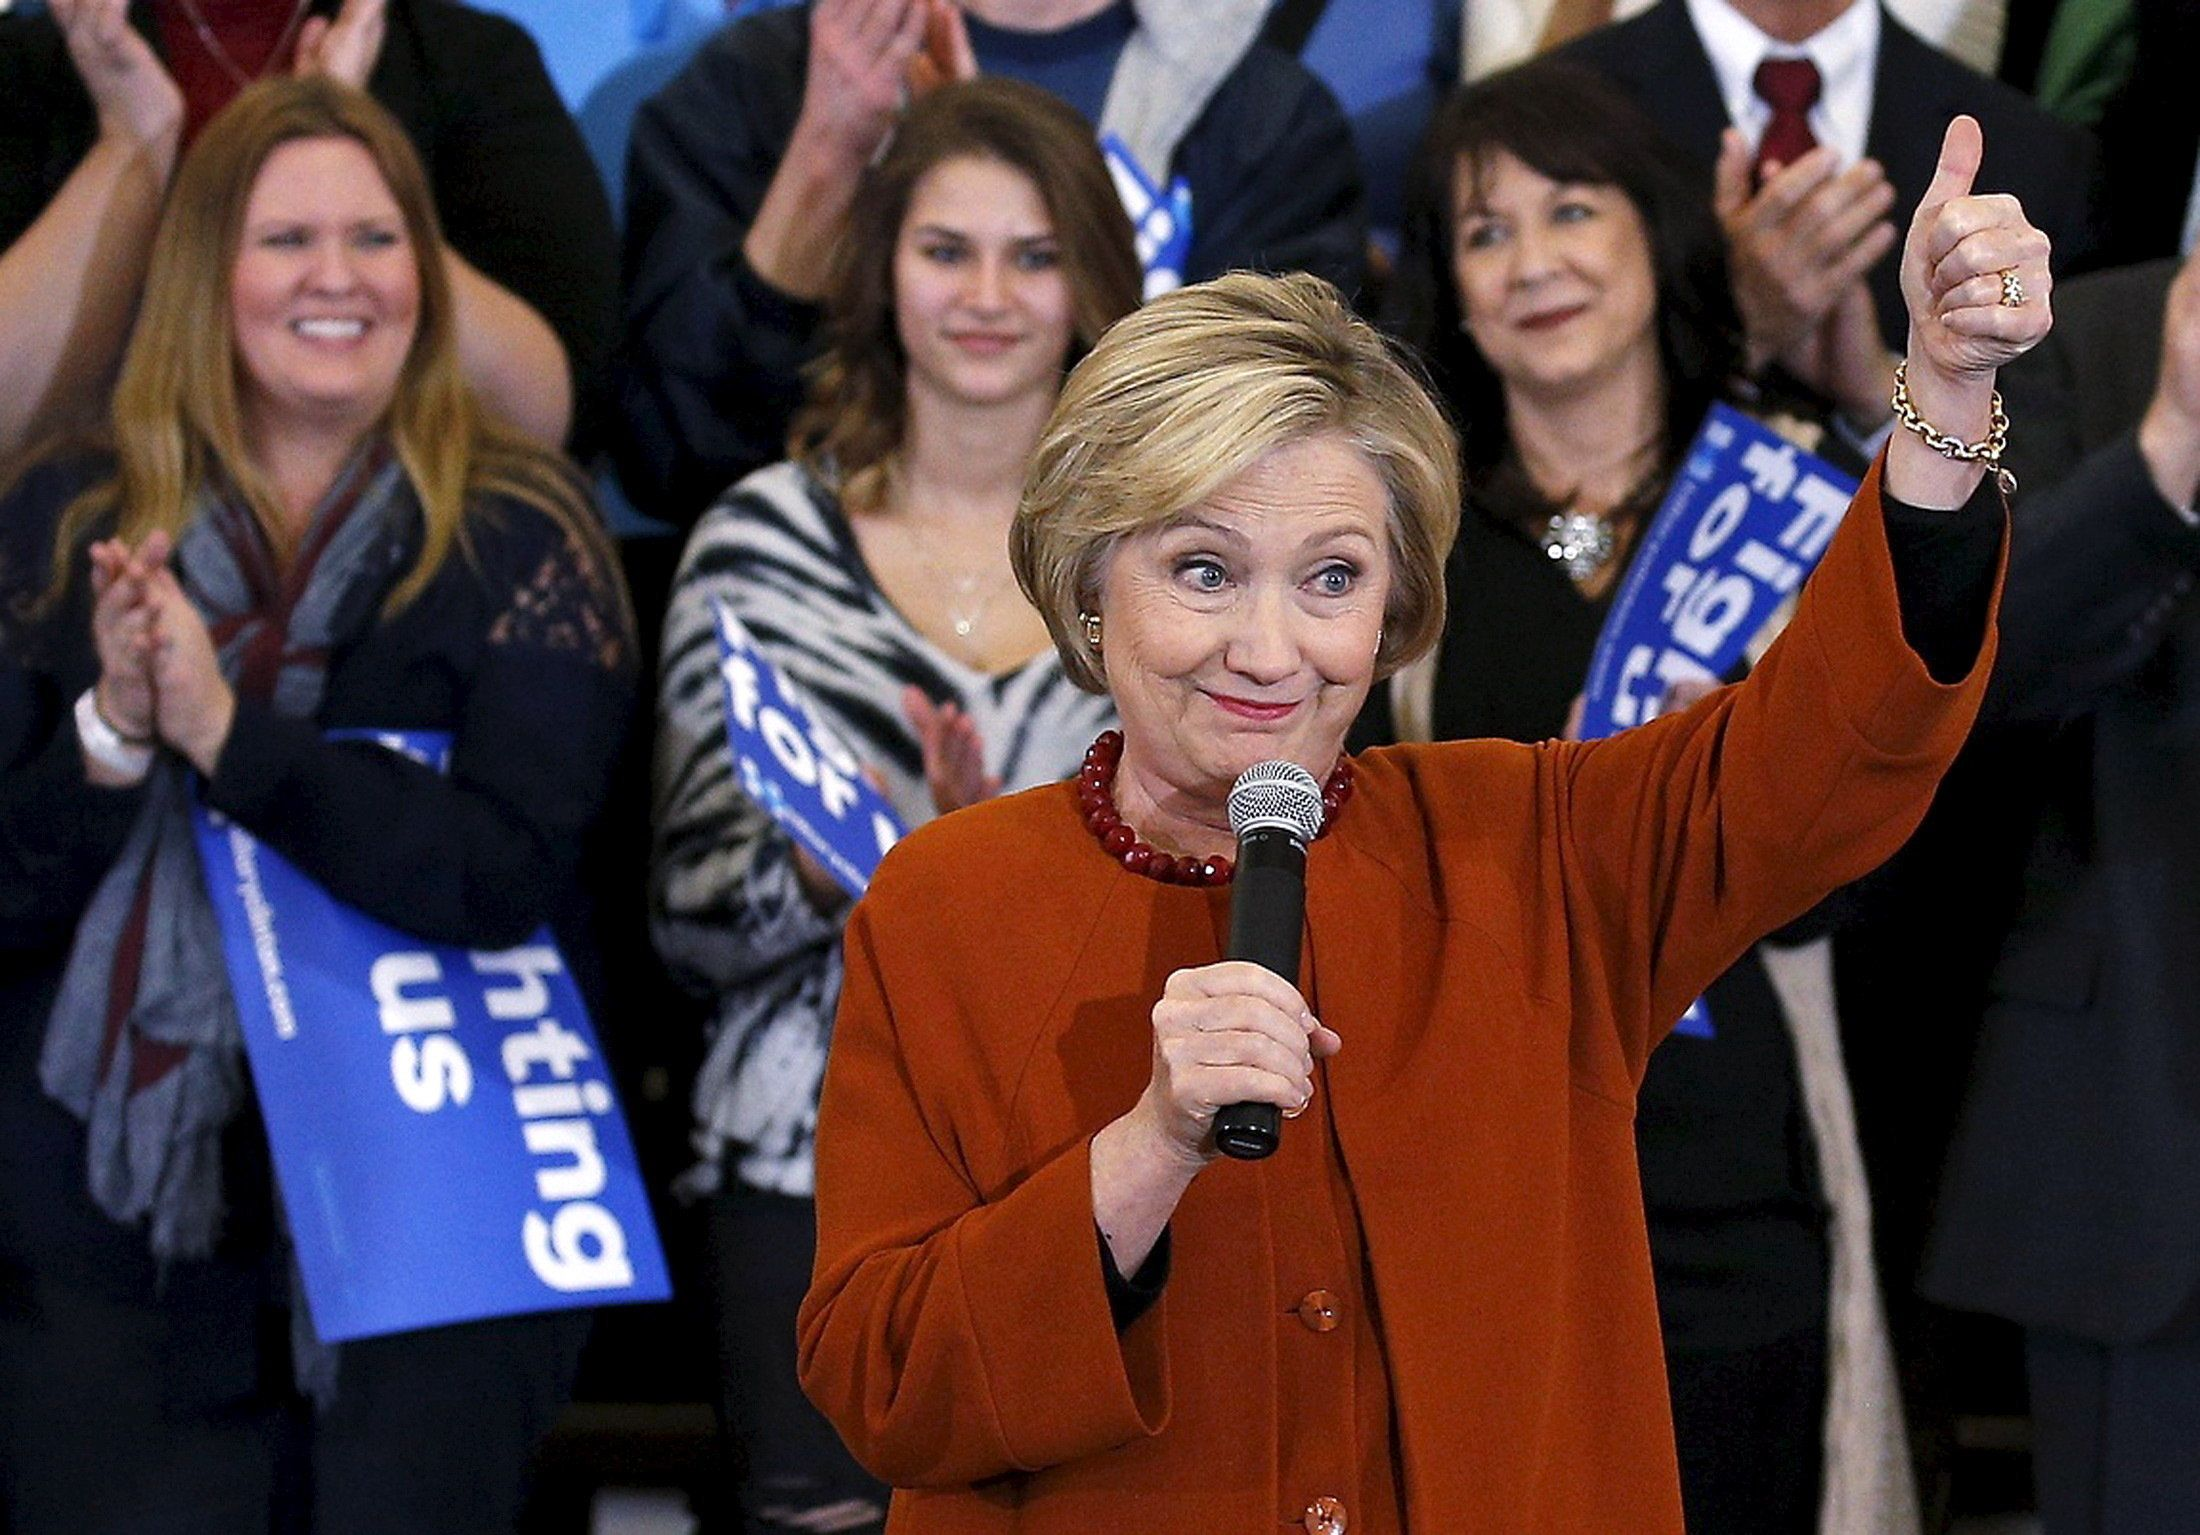 U.S. Democratic presidential candidate Hillary Clinton reacts as she waves to supporters at a campaign rally in Eau Claire, Wisconsin, April 2, 2016. REUTERS/Adam Bettcher